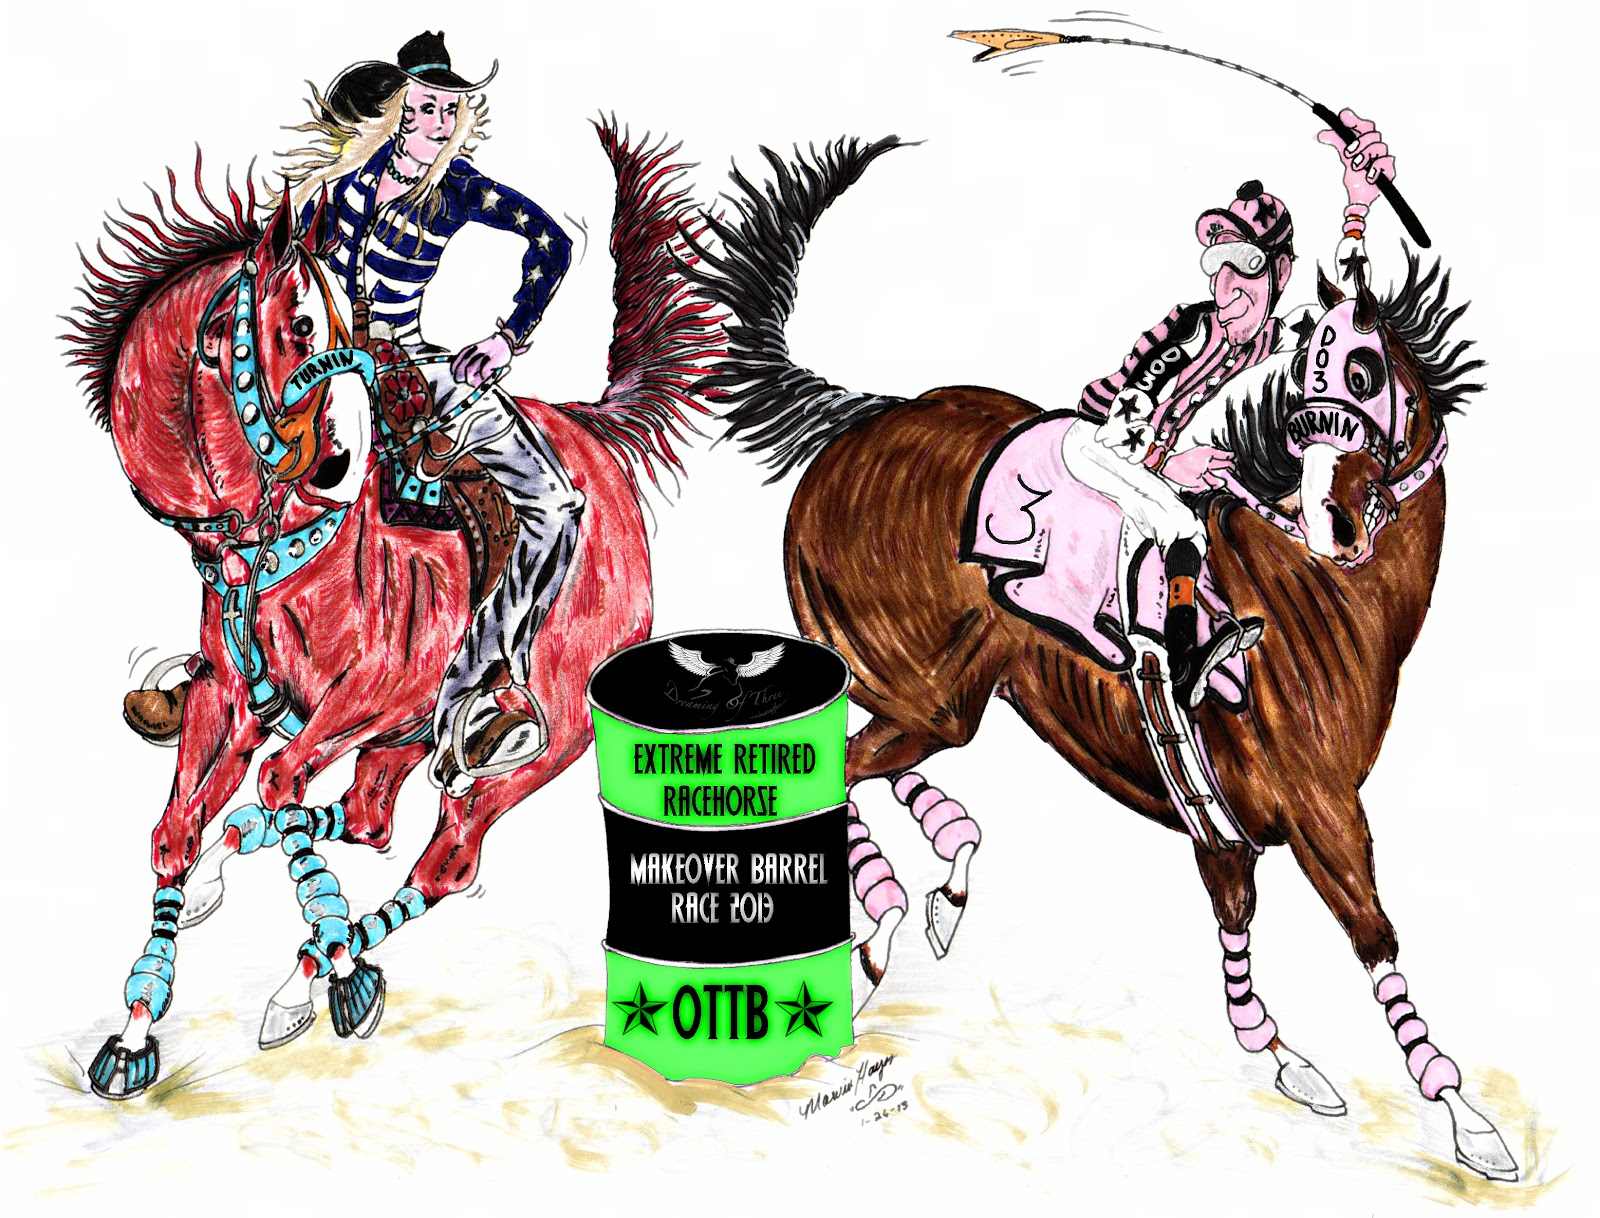 Extreme Retired Racehorse Makeover Barrel Race